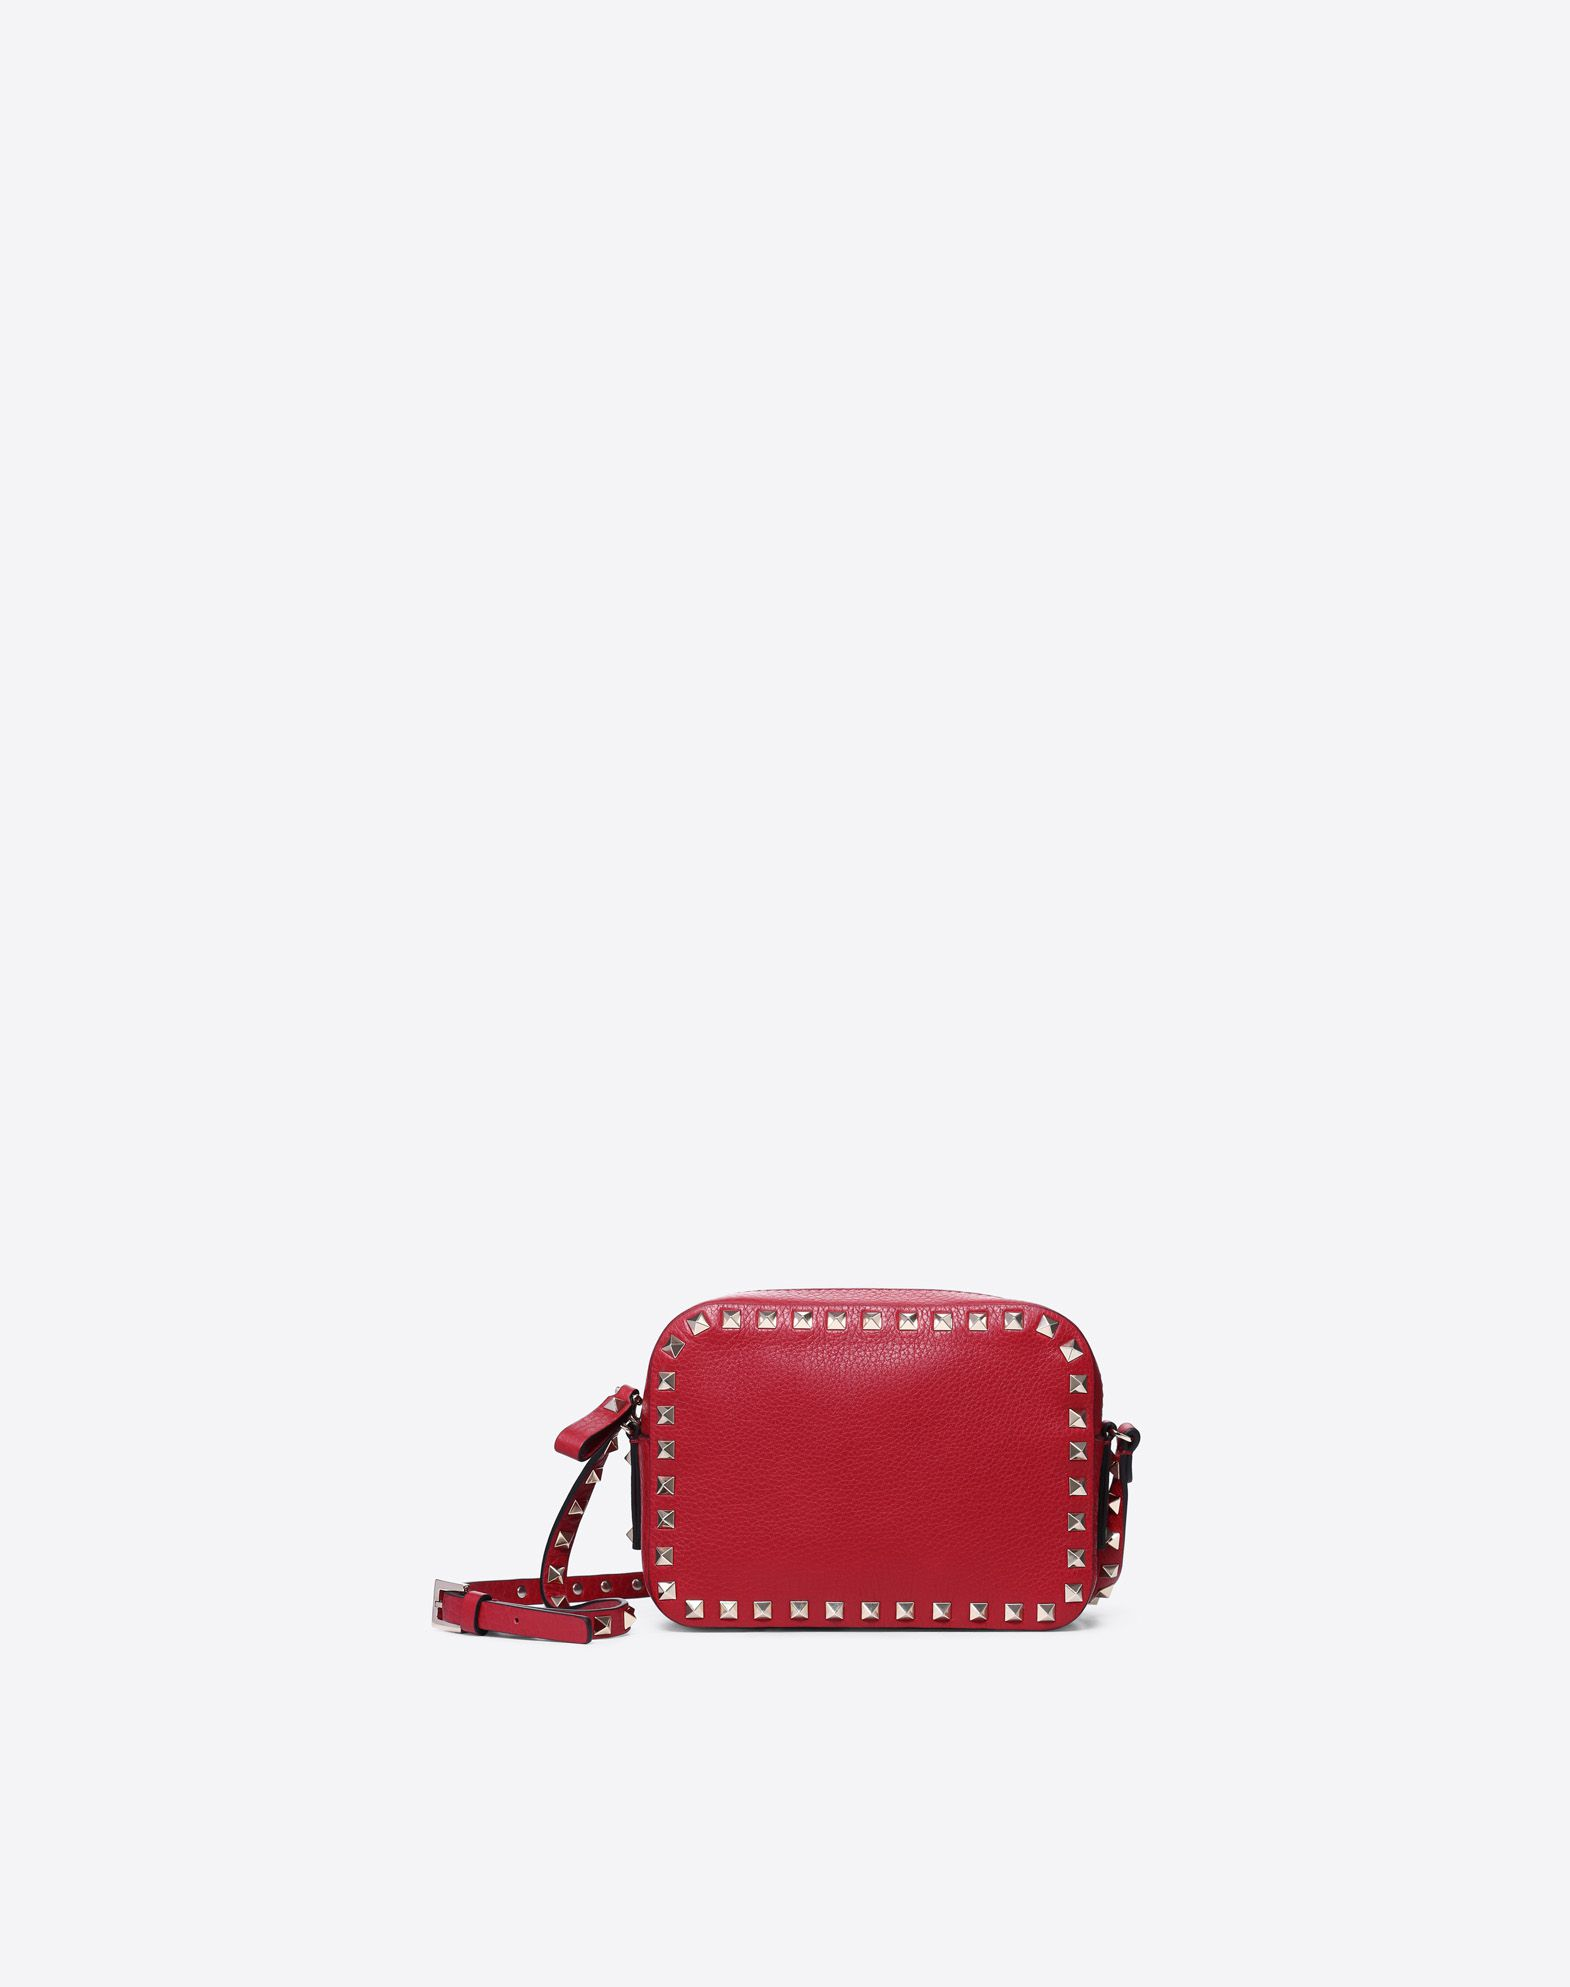 VALENTINO GARAVANI Rockstud Cross Body Bag CROSS BODY BAG D f